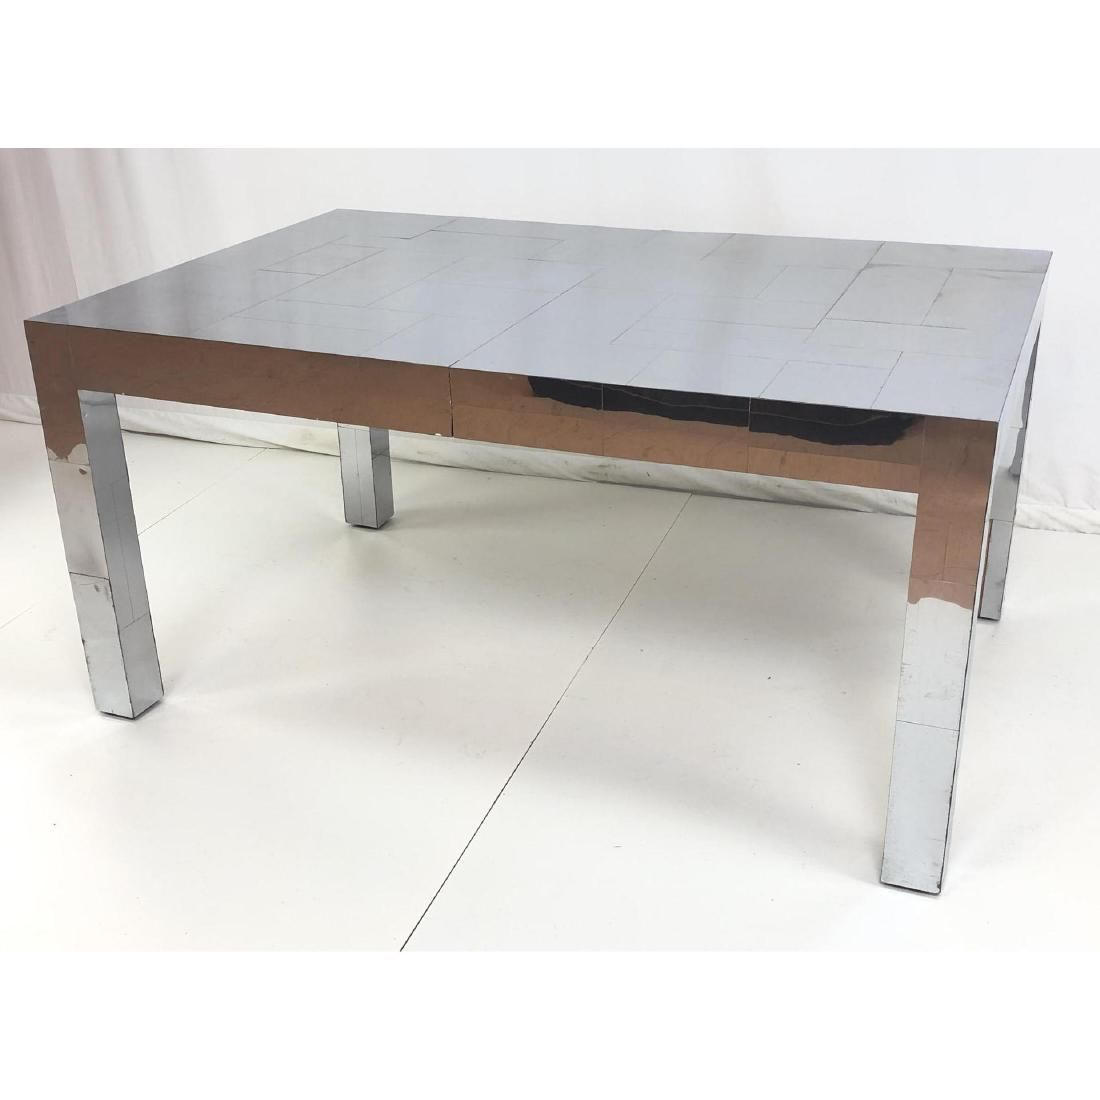 PAUL EVANS Stainless Cityscape Dining Table. Thic